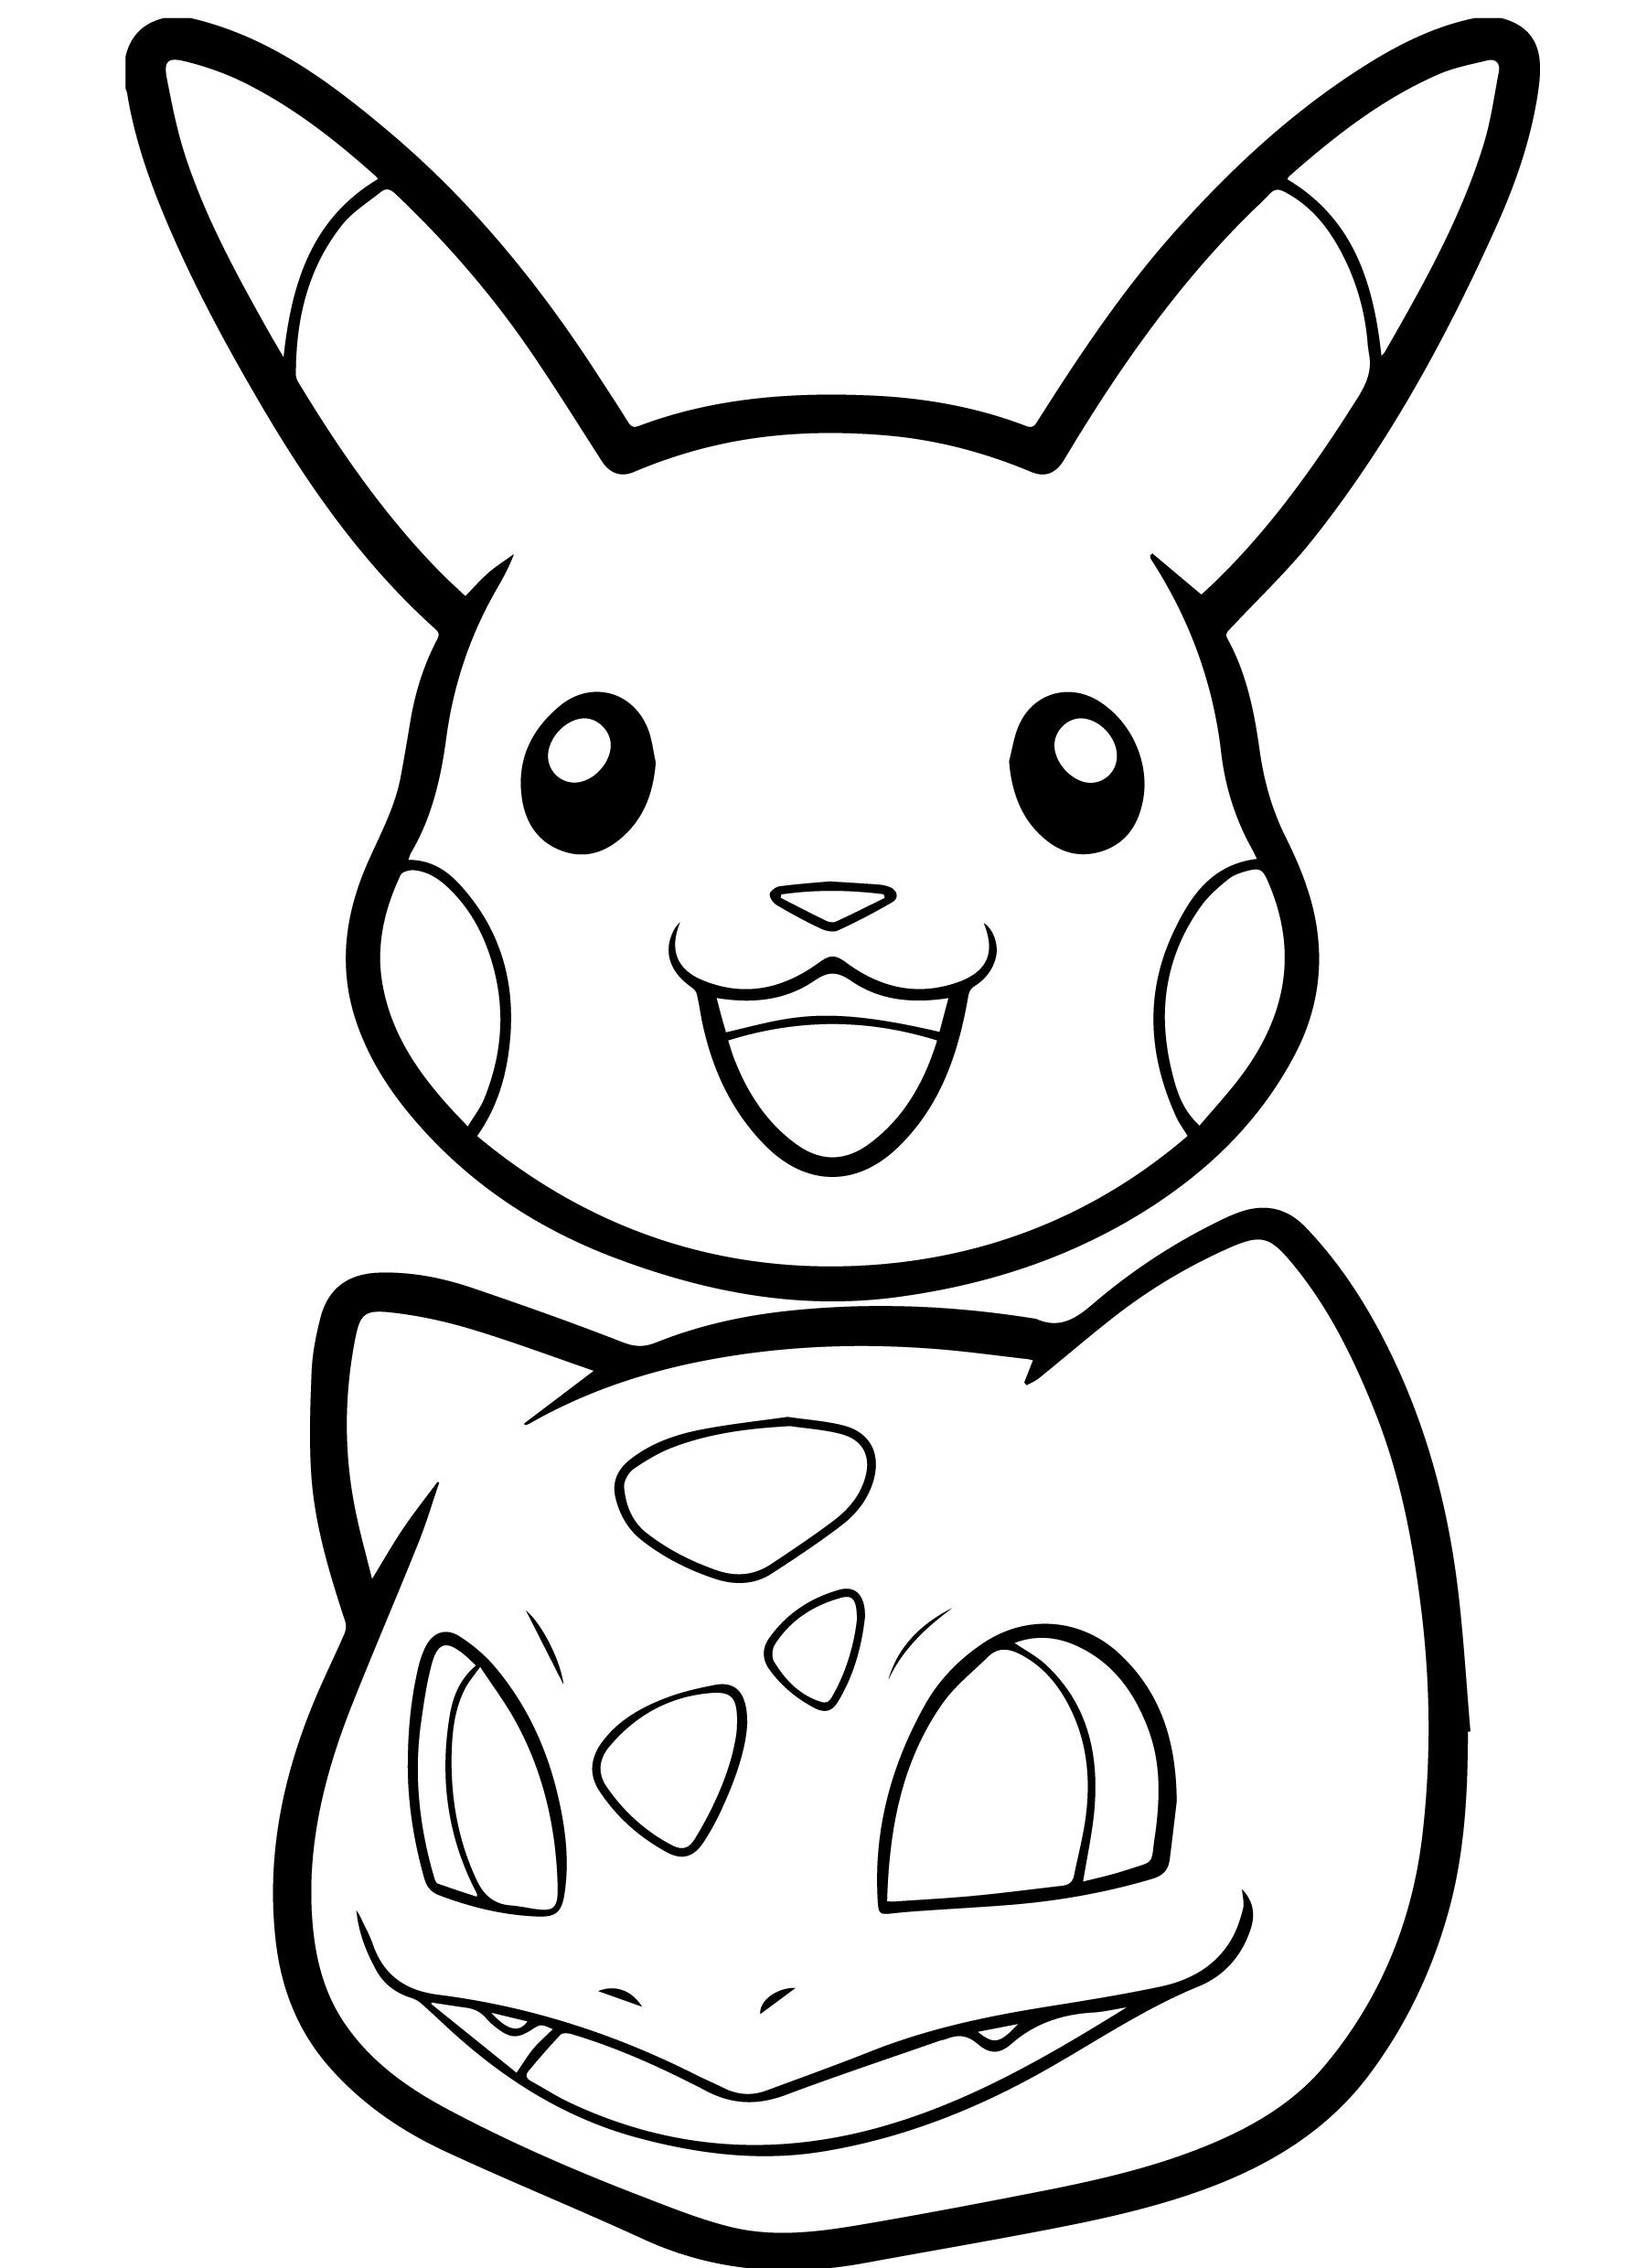 Pikachu Coloring Pages Head Pikachu Coloriage Merci Maitresse